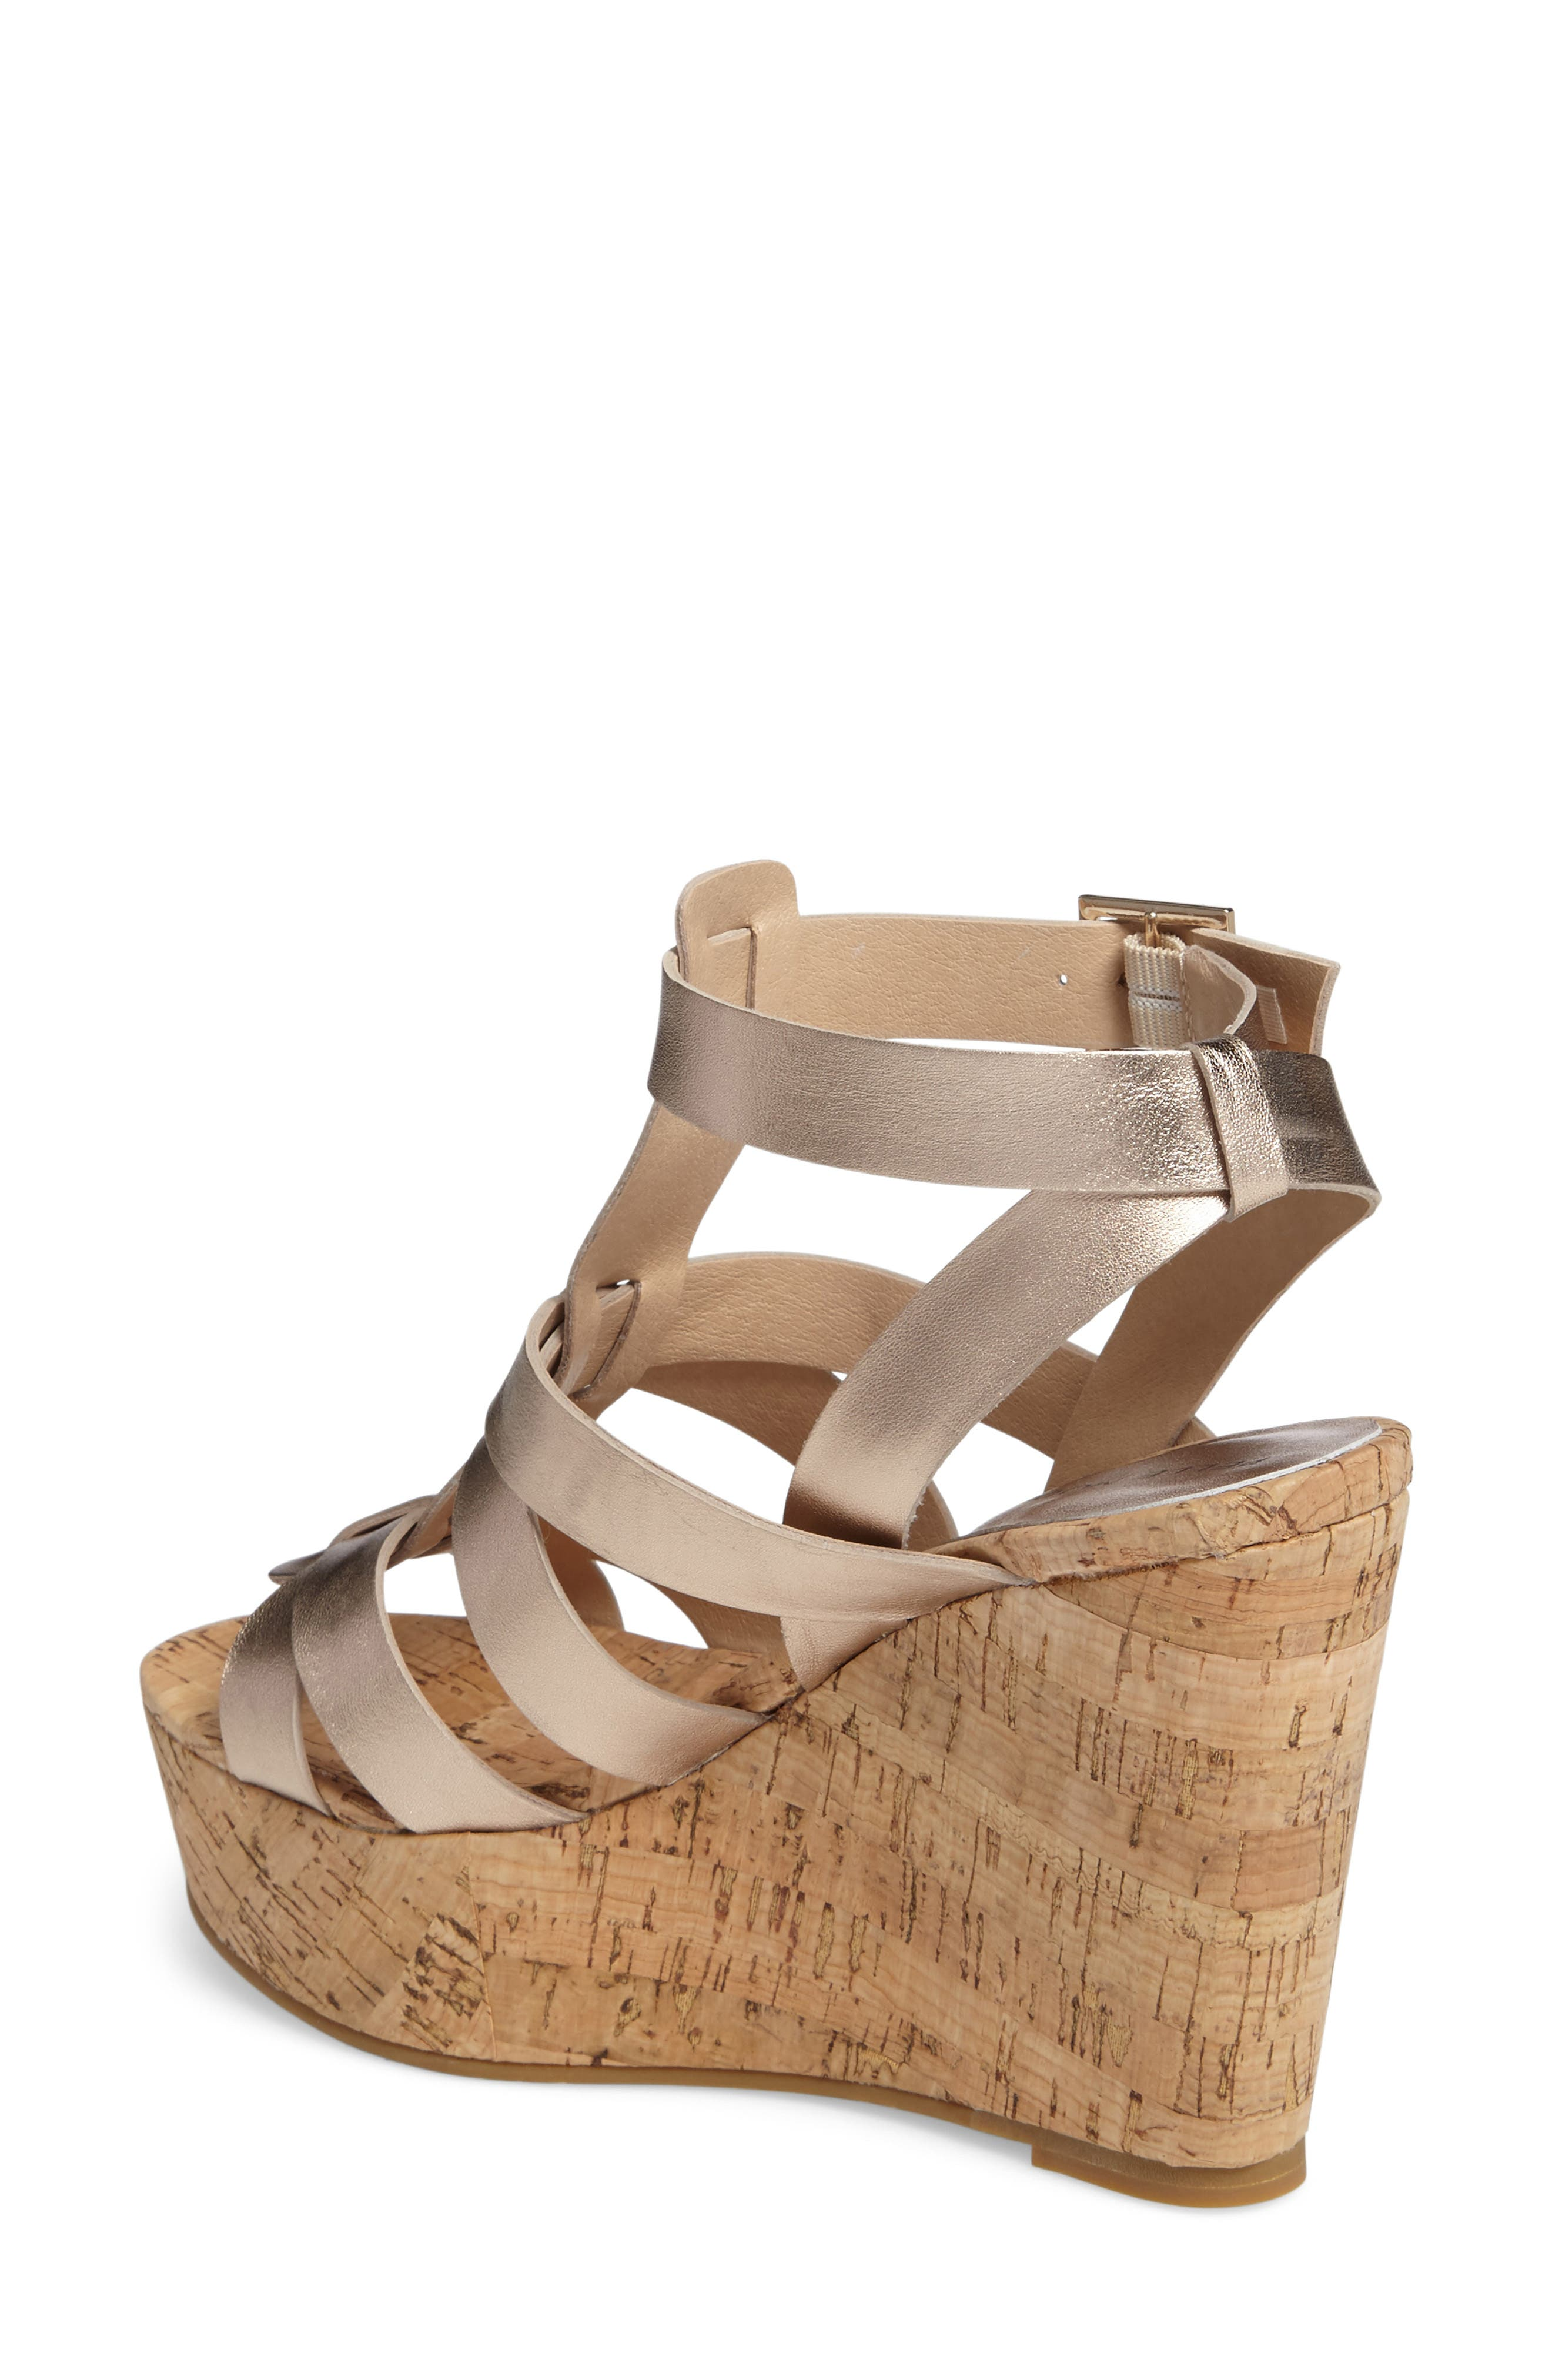 Rayjay Wedge Sandal,                             Alternate thumbnail 8, color,